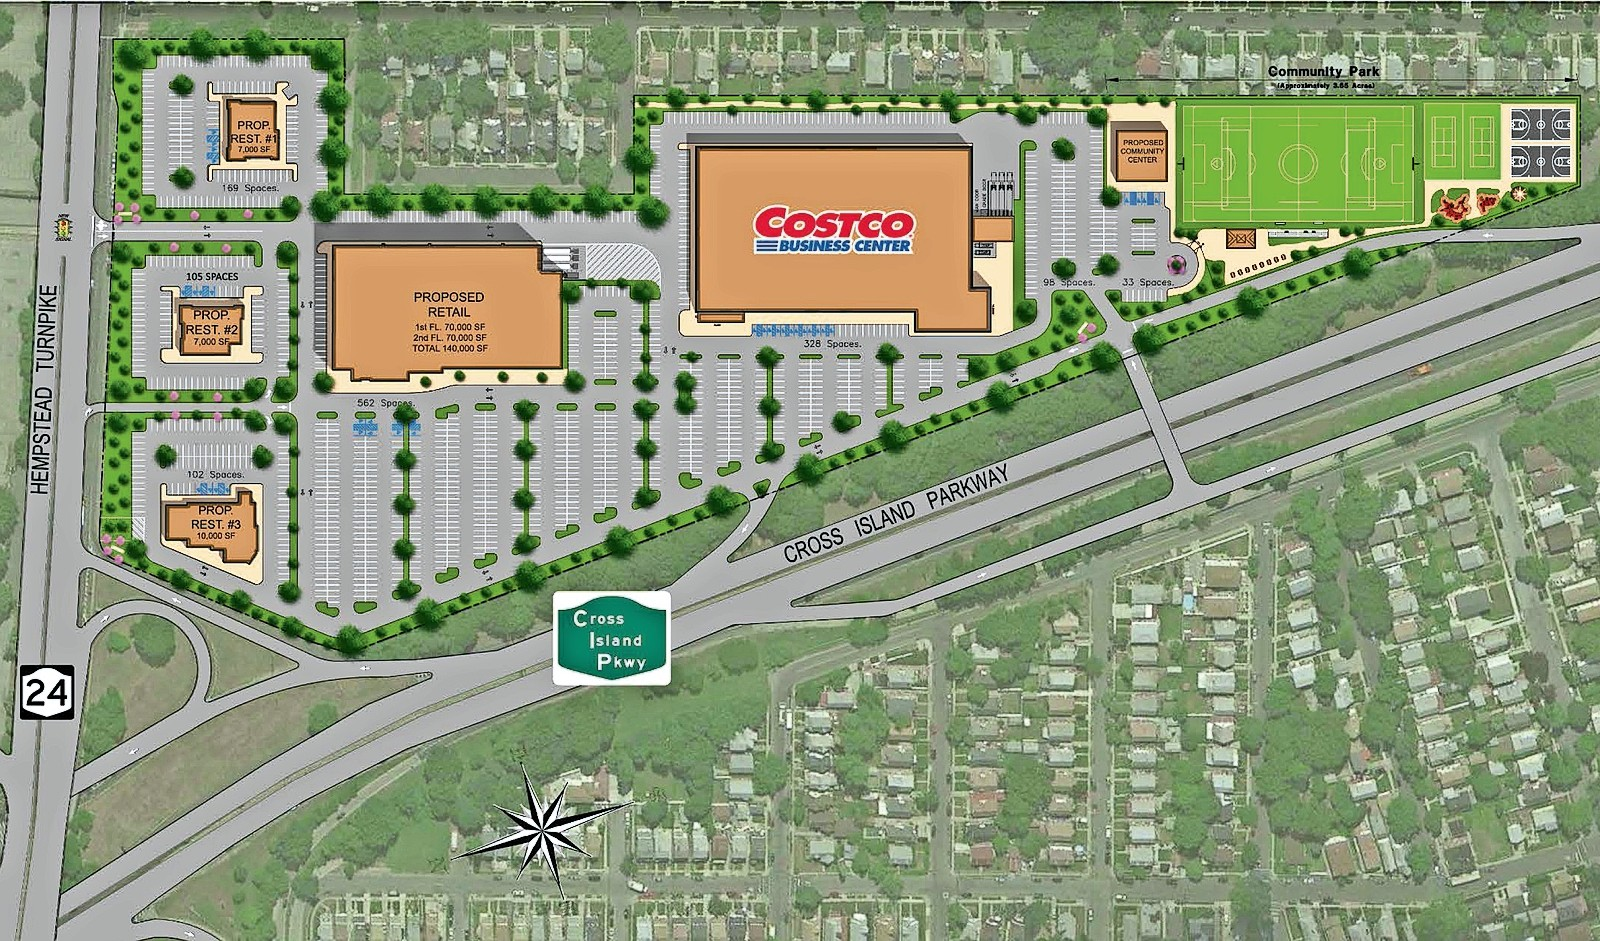 Blumenfeld Development Group's plan for Belmont Park consists of a smaller Costco along with restaurants, retail space and a recreation center.